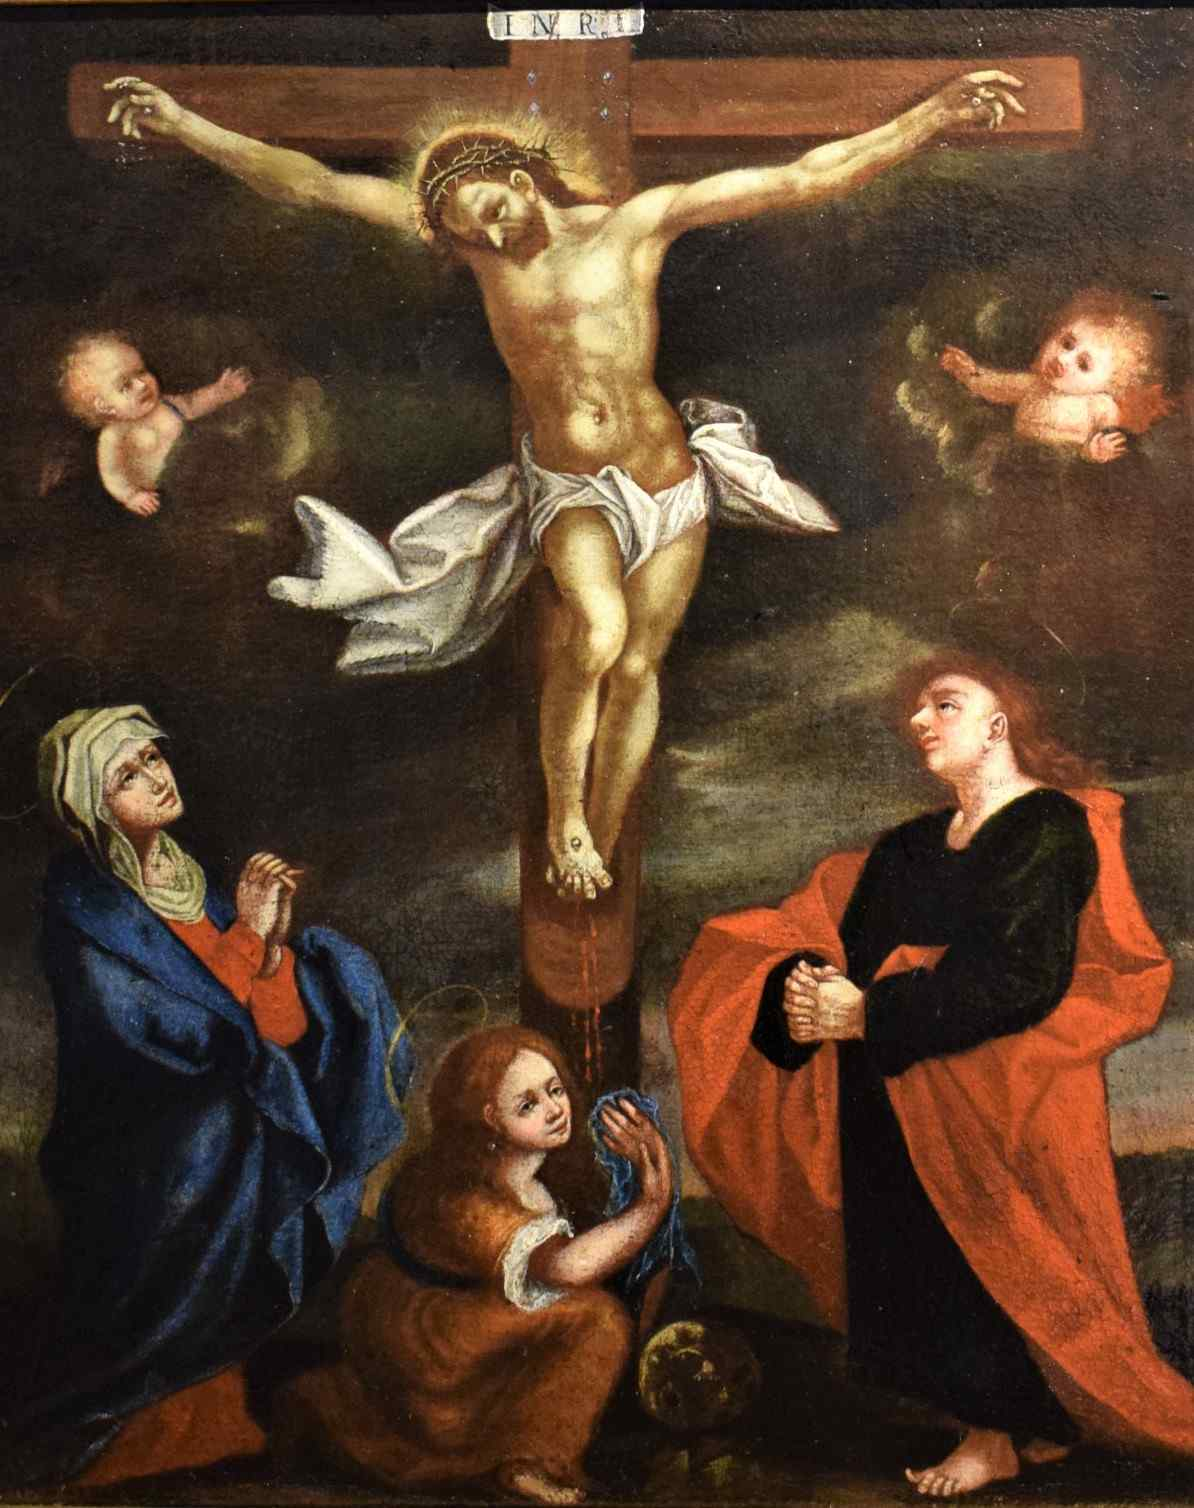 The Crucifixion of Christ at the end of the 16th century